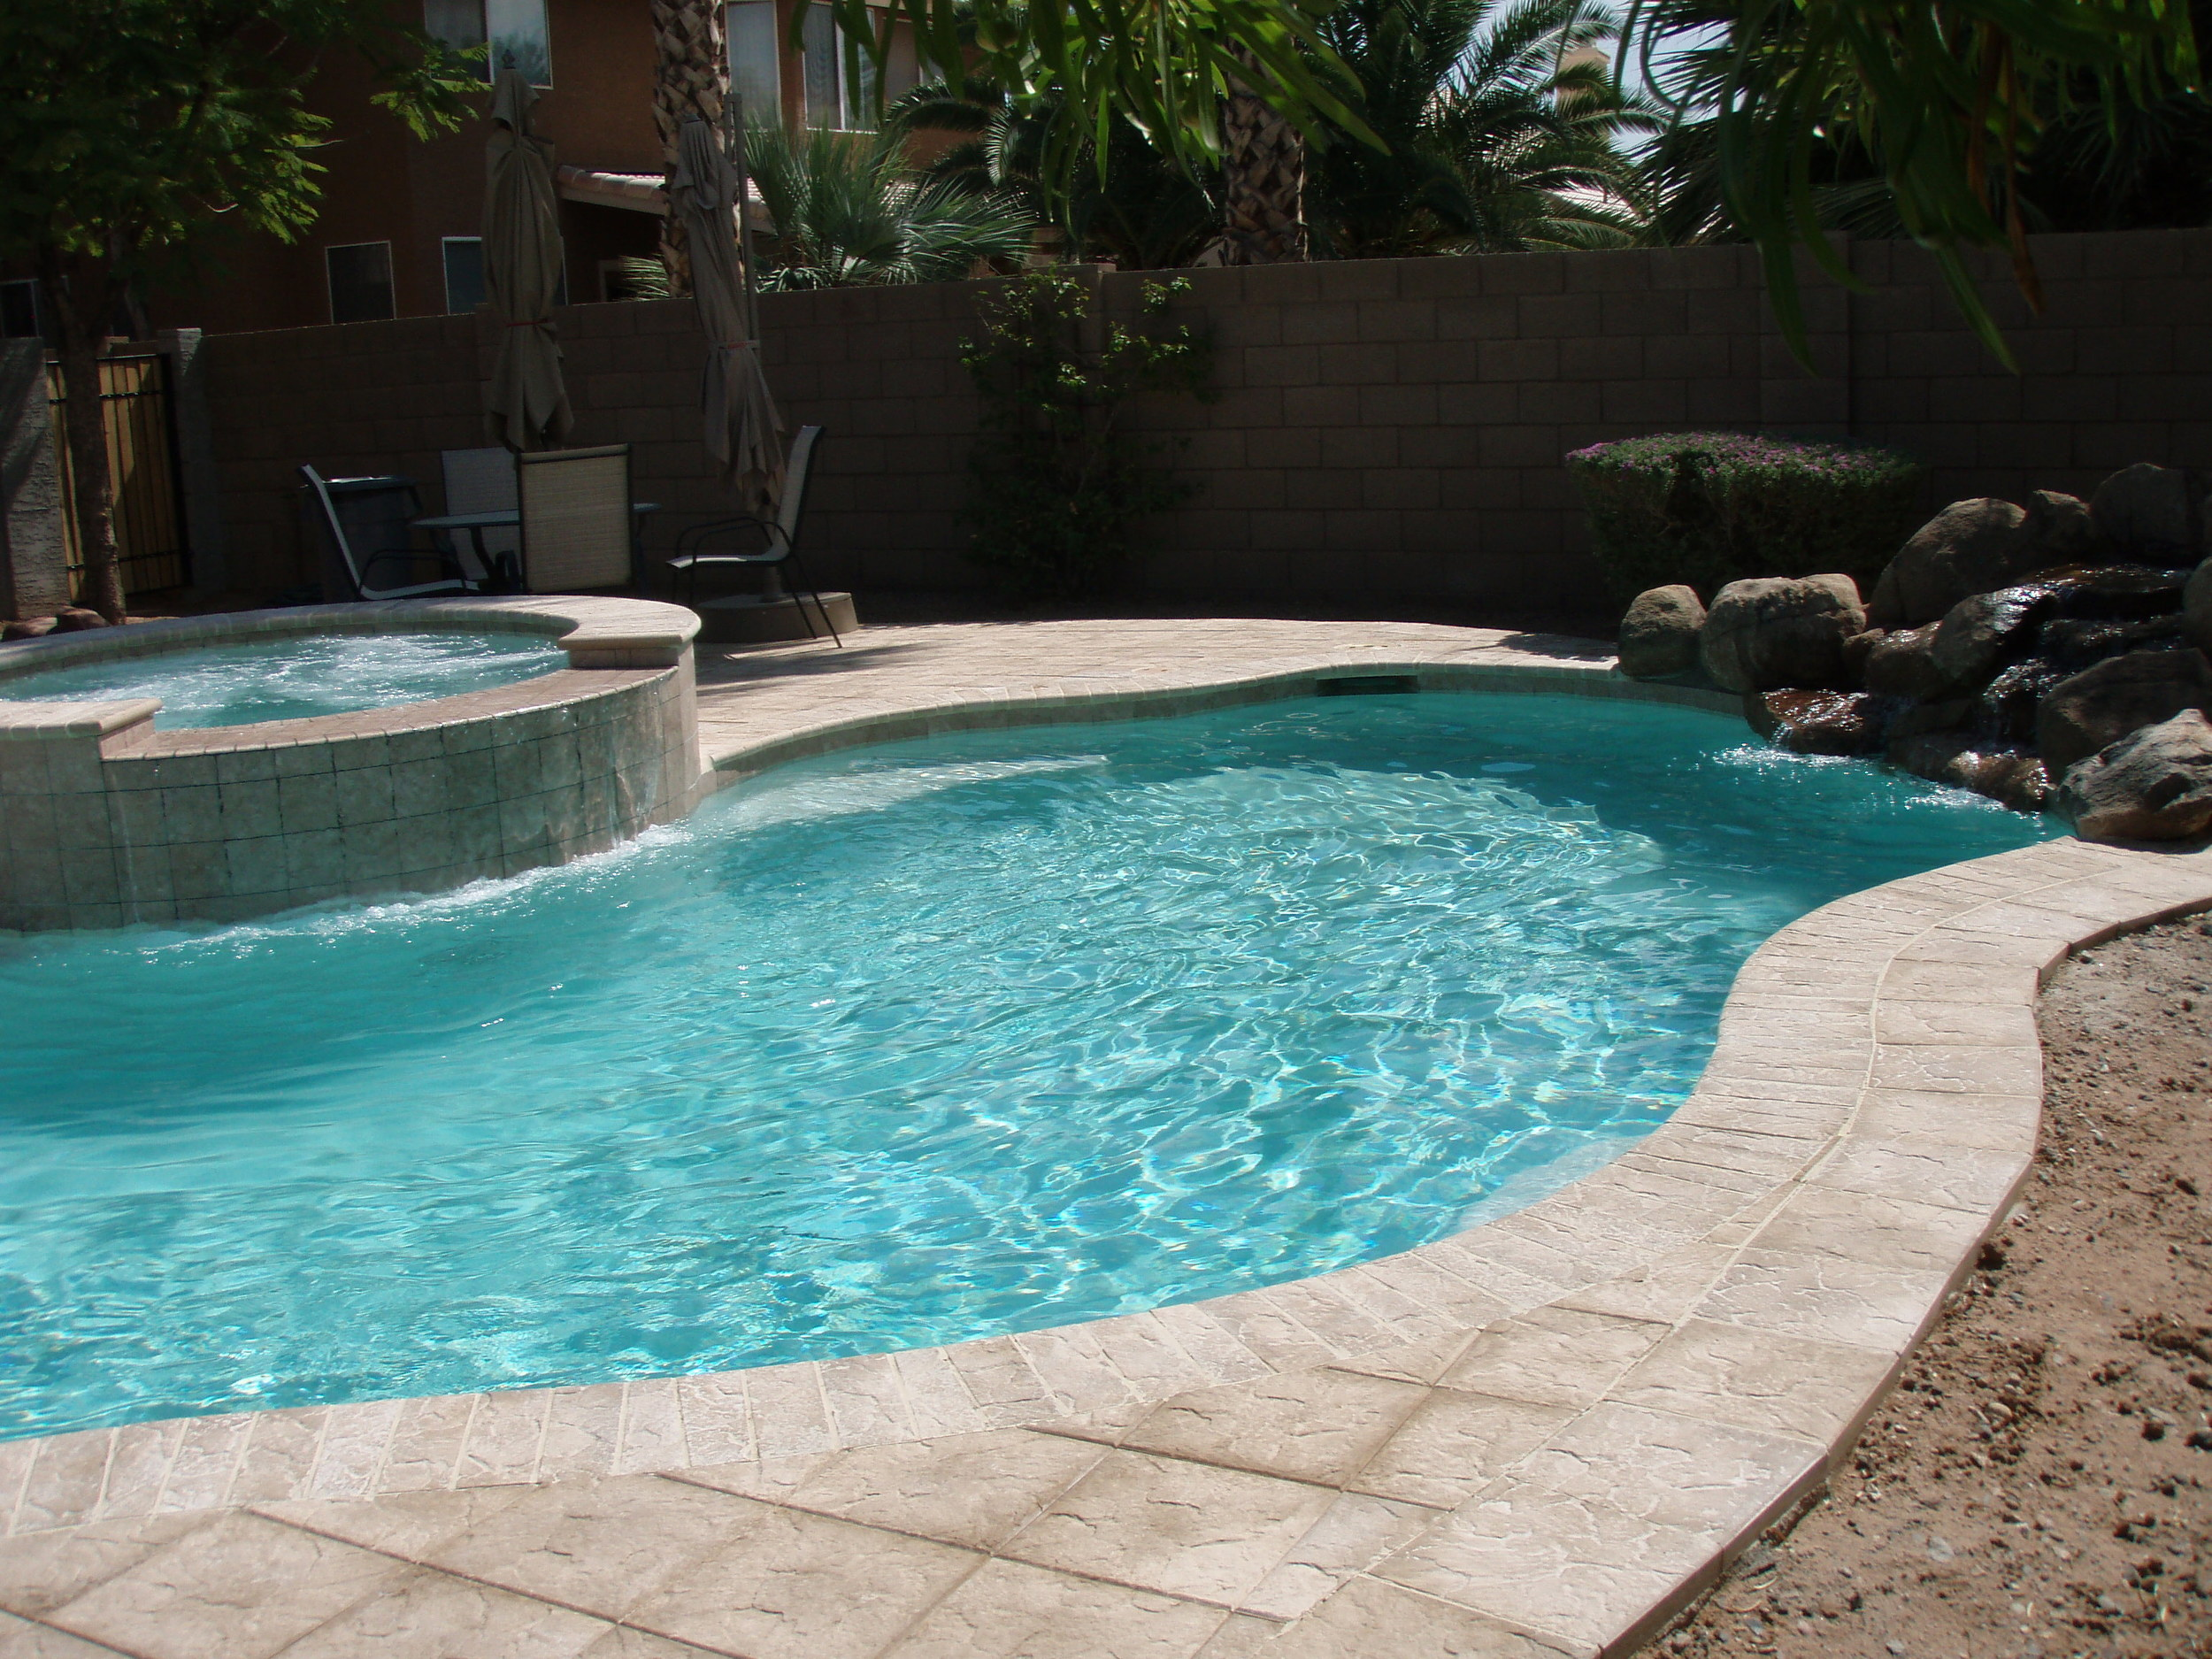 6 THINGS YOU NEED TO DETERMINE BEFORE YOU START SHOPPING FOR A NEW POOL